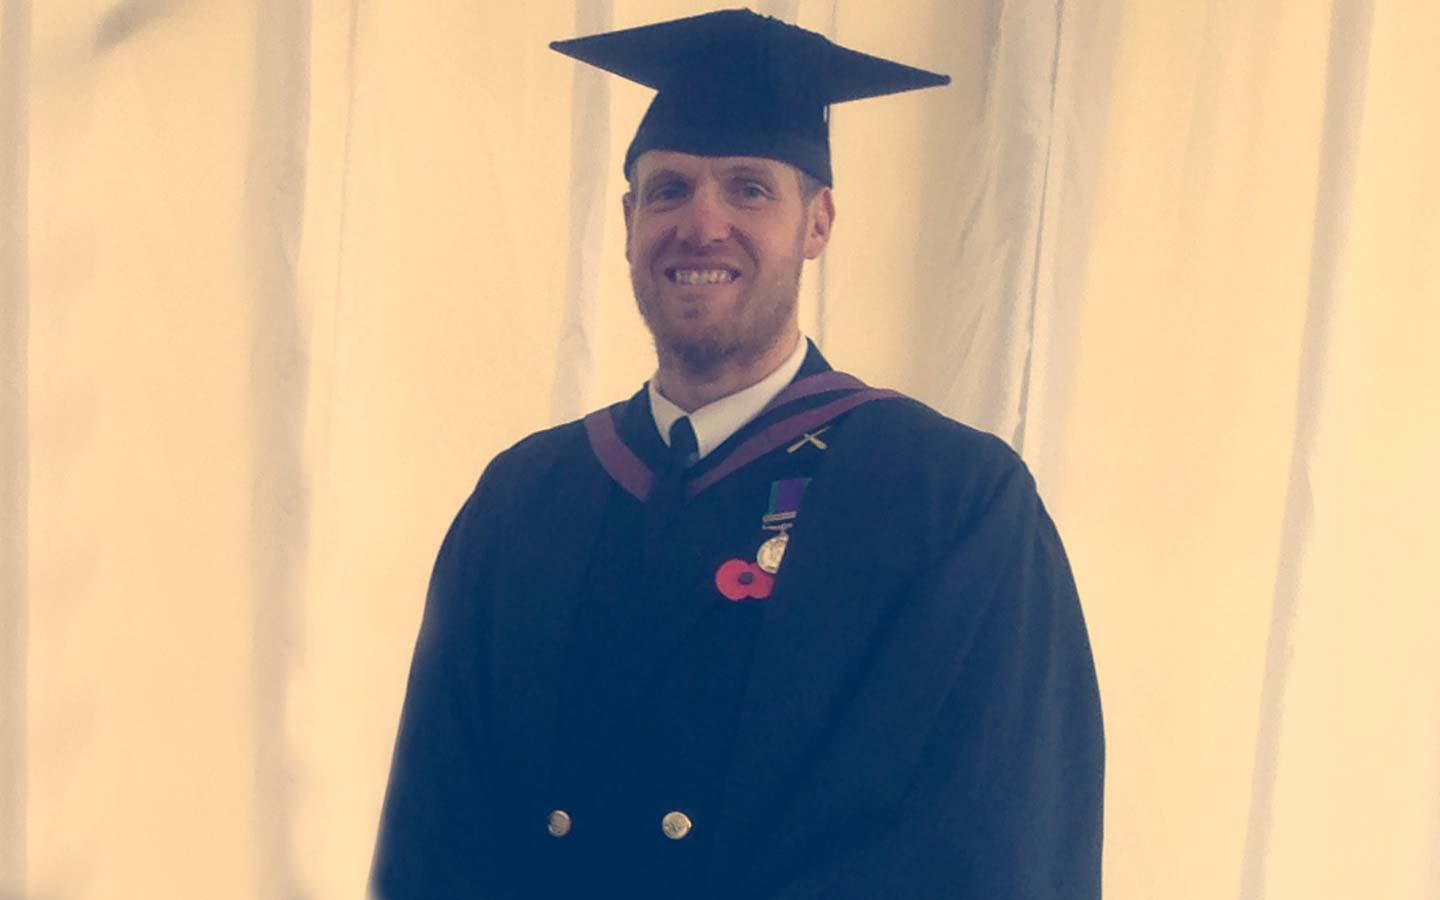 Armed Forces student Paul Todd